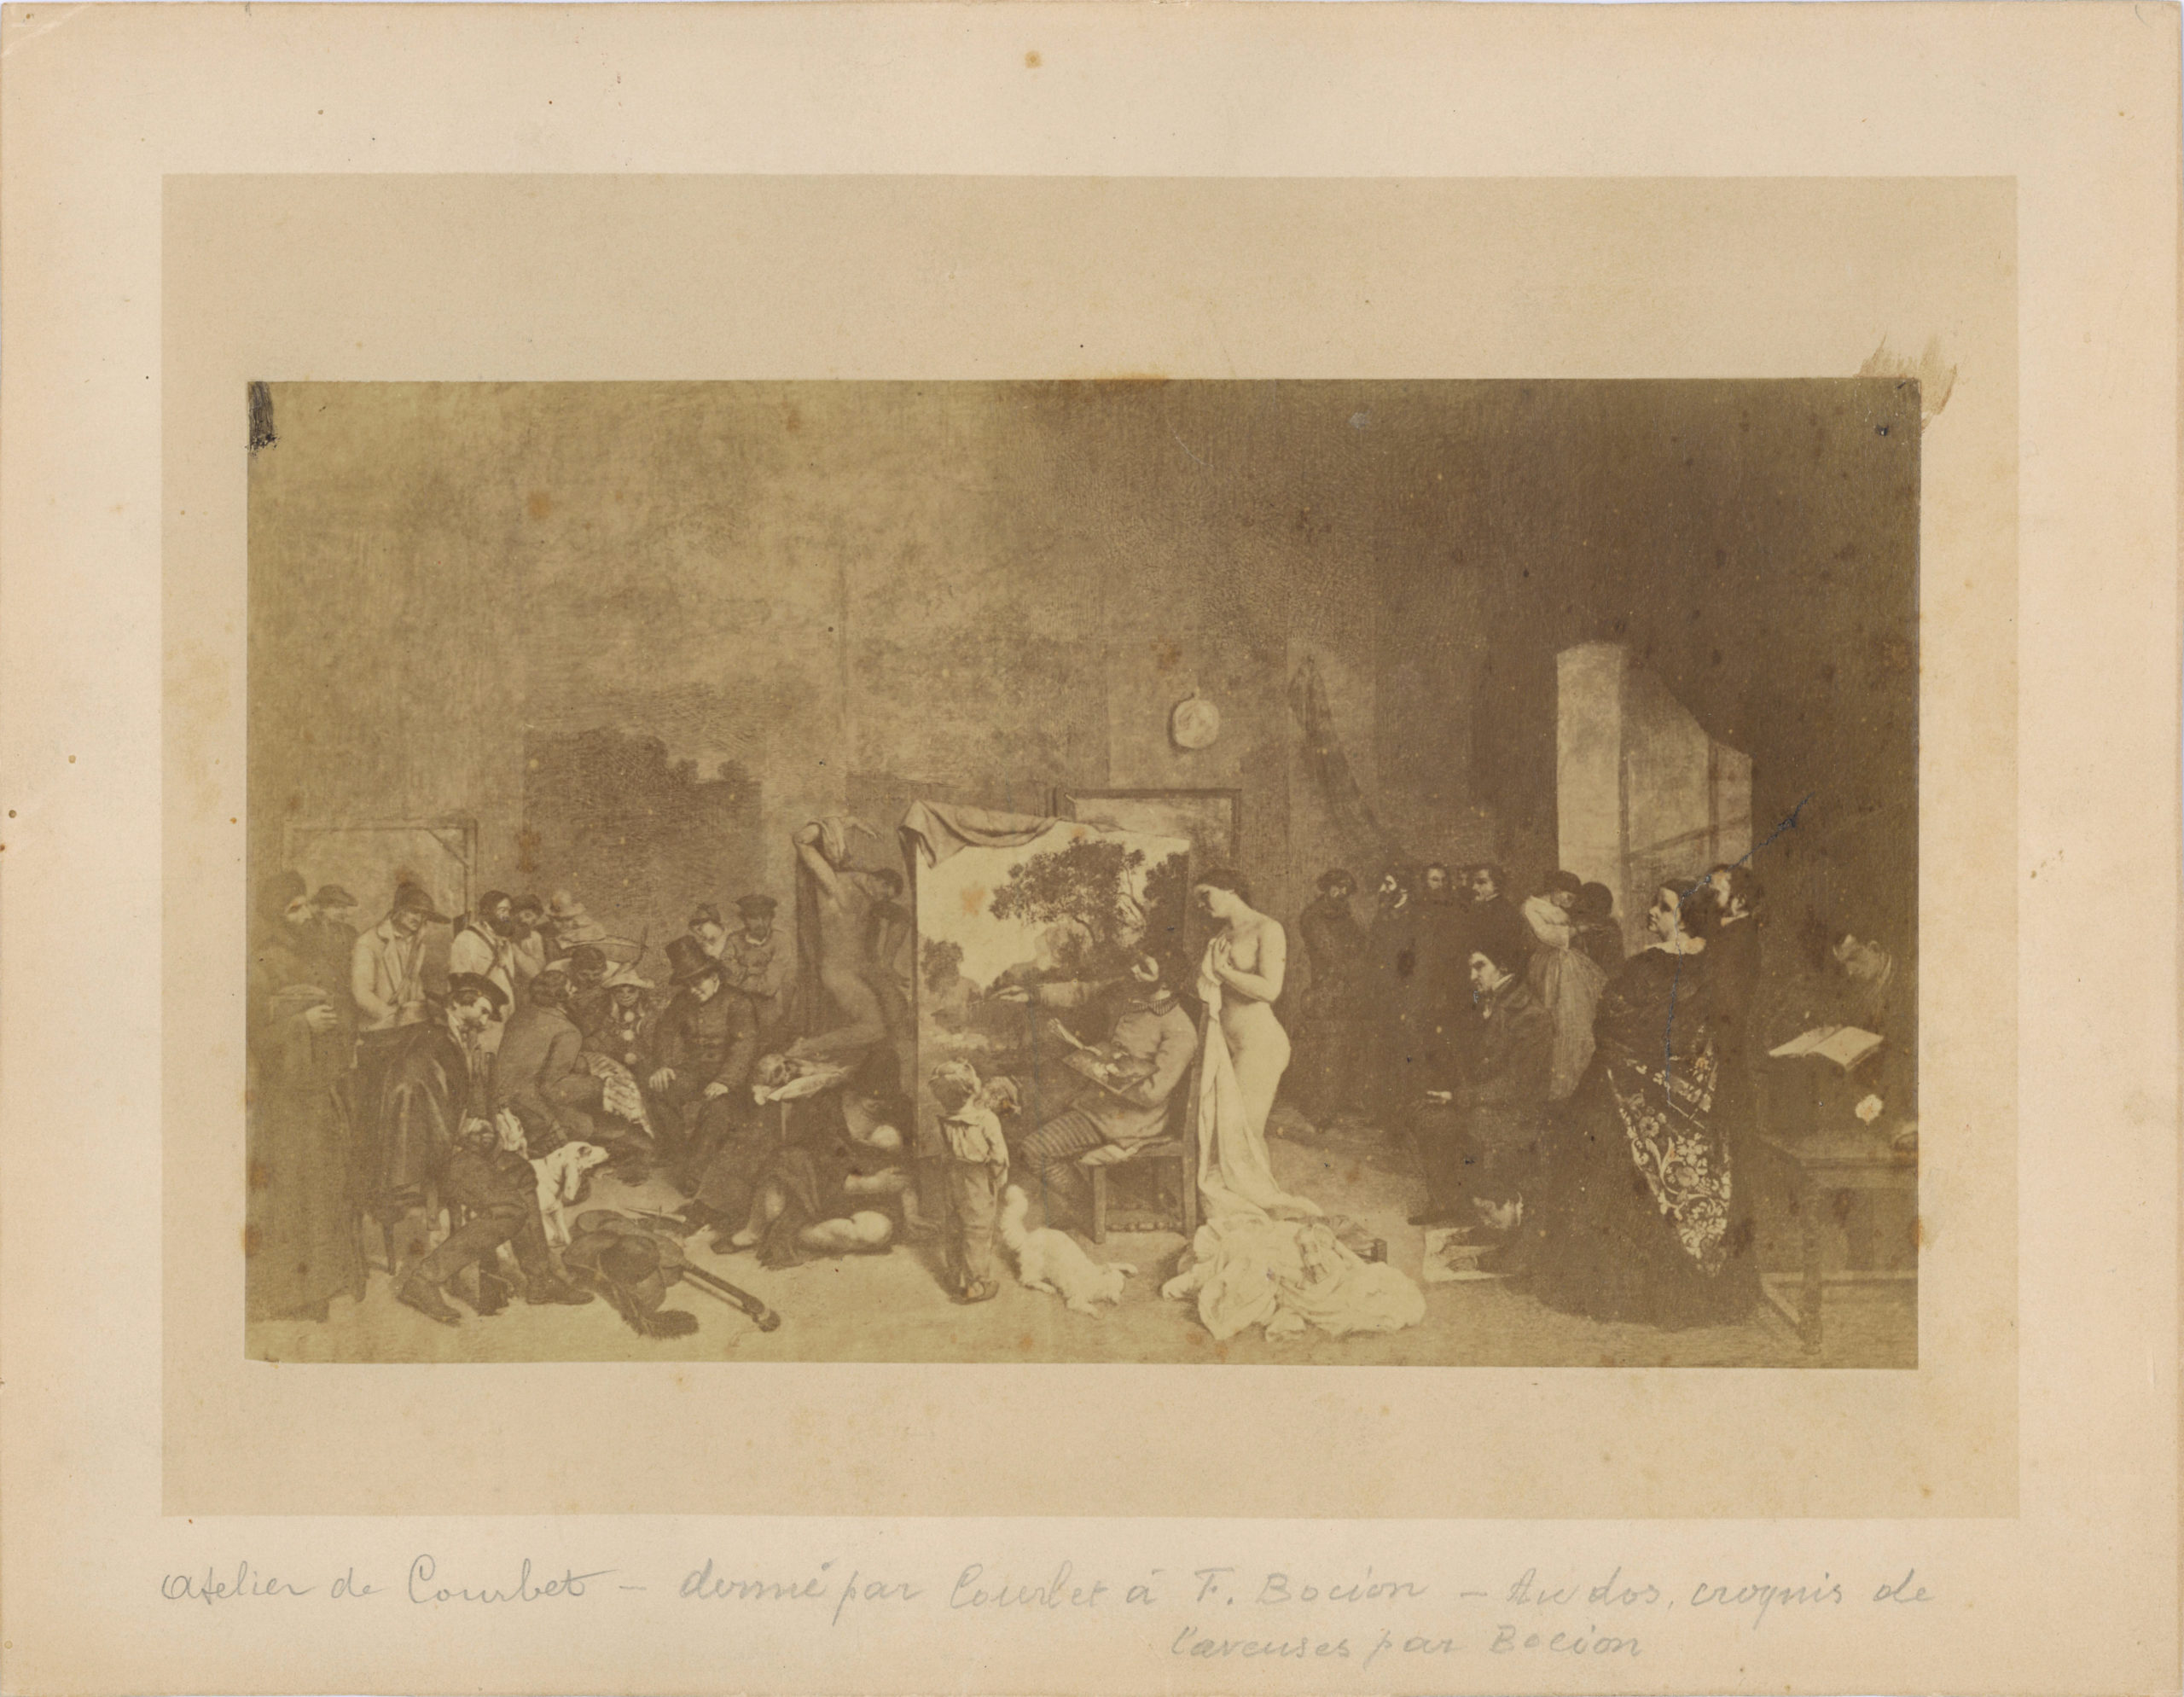 Photograph given to François Bocion by Gustave Courbet - Recto, l'Atelier du peintre